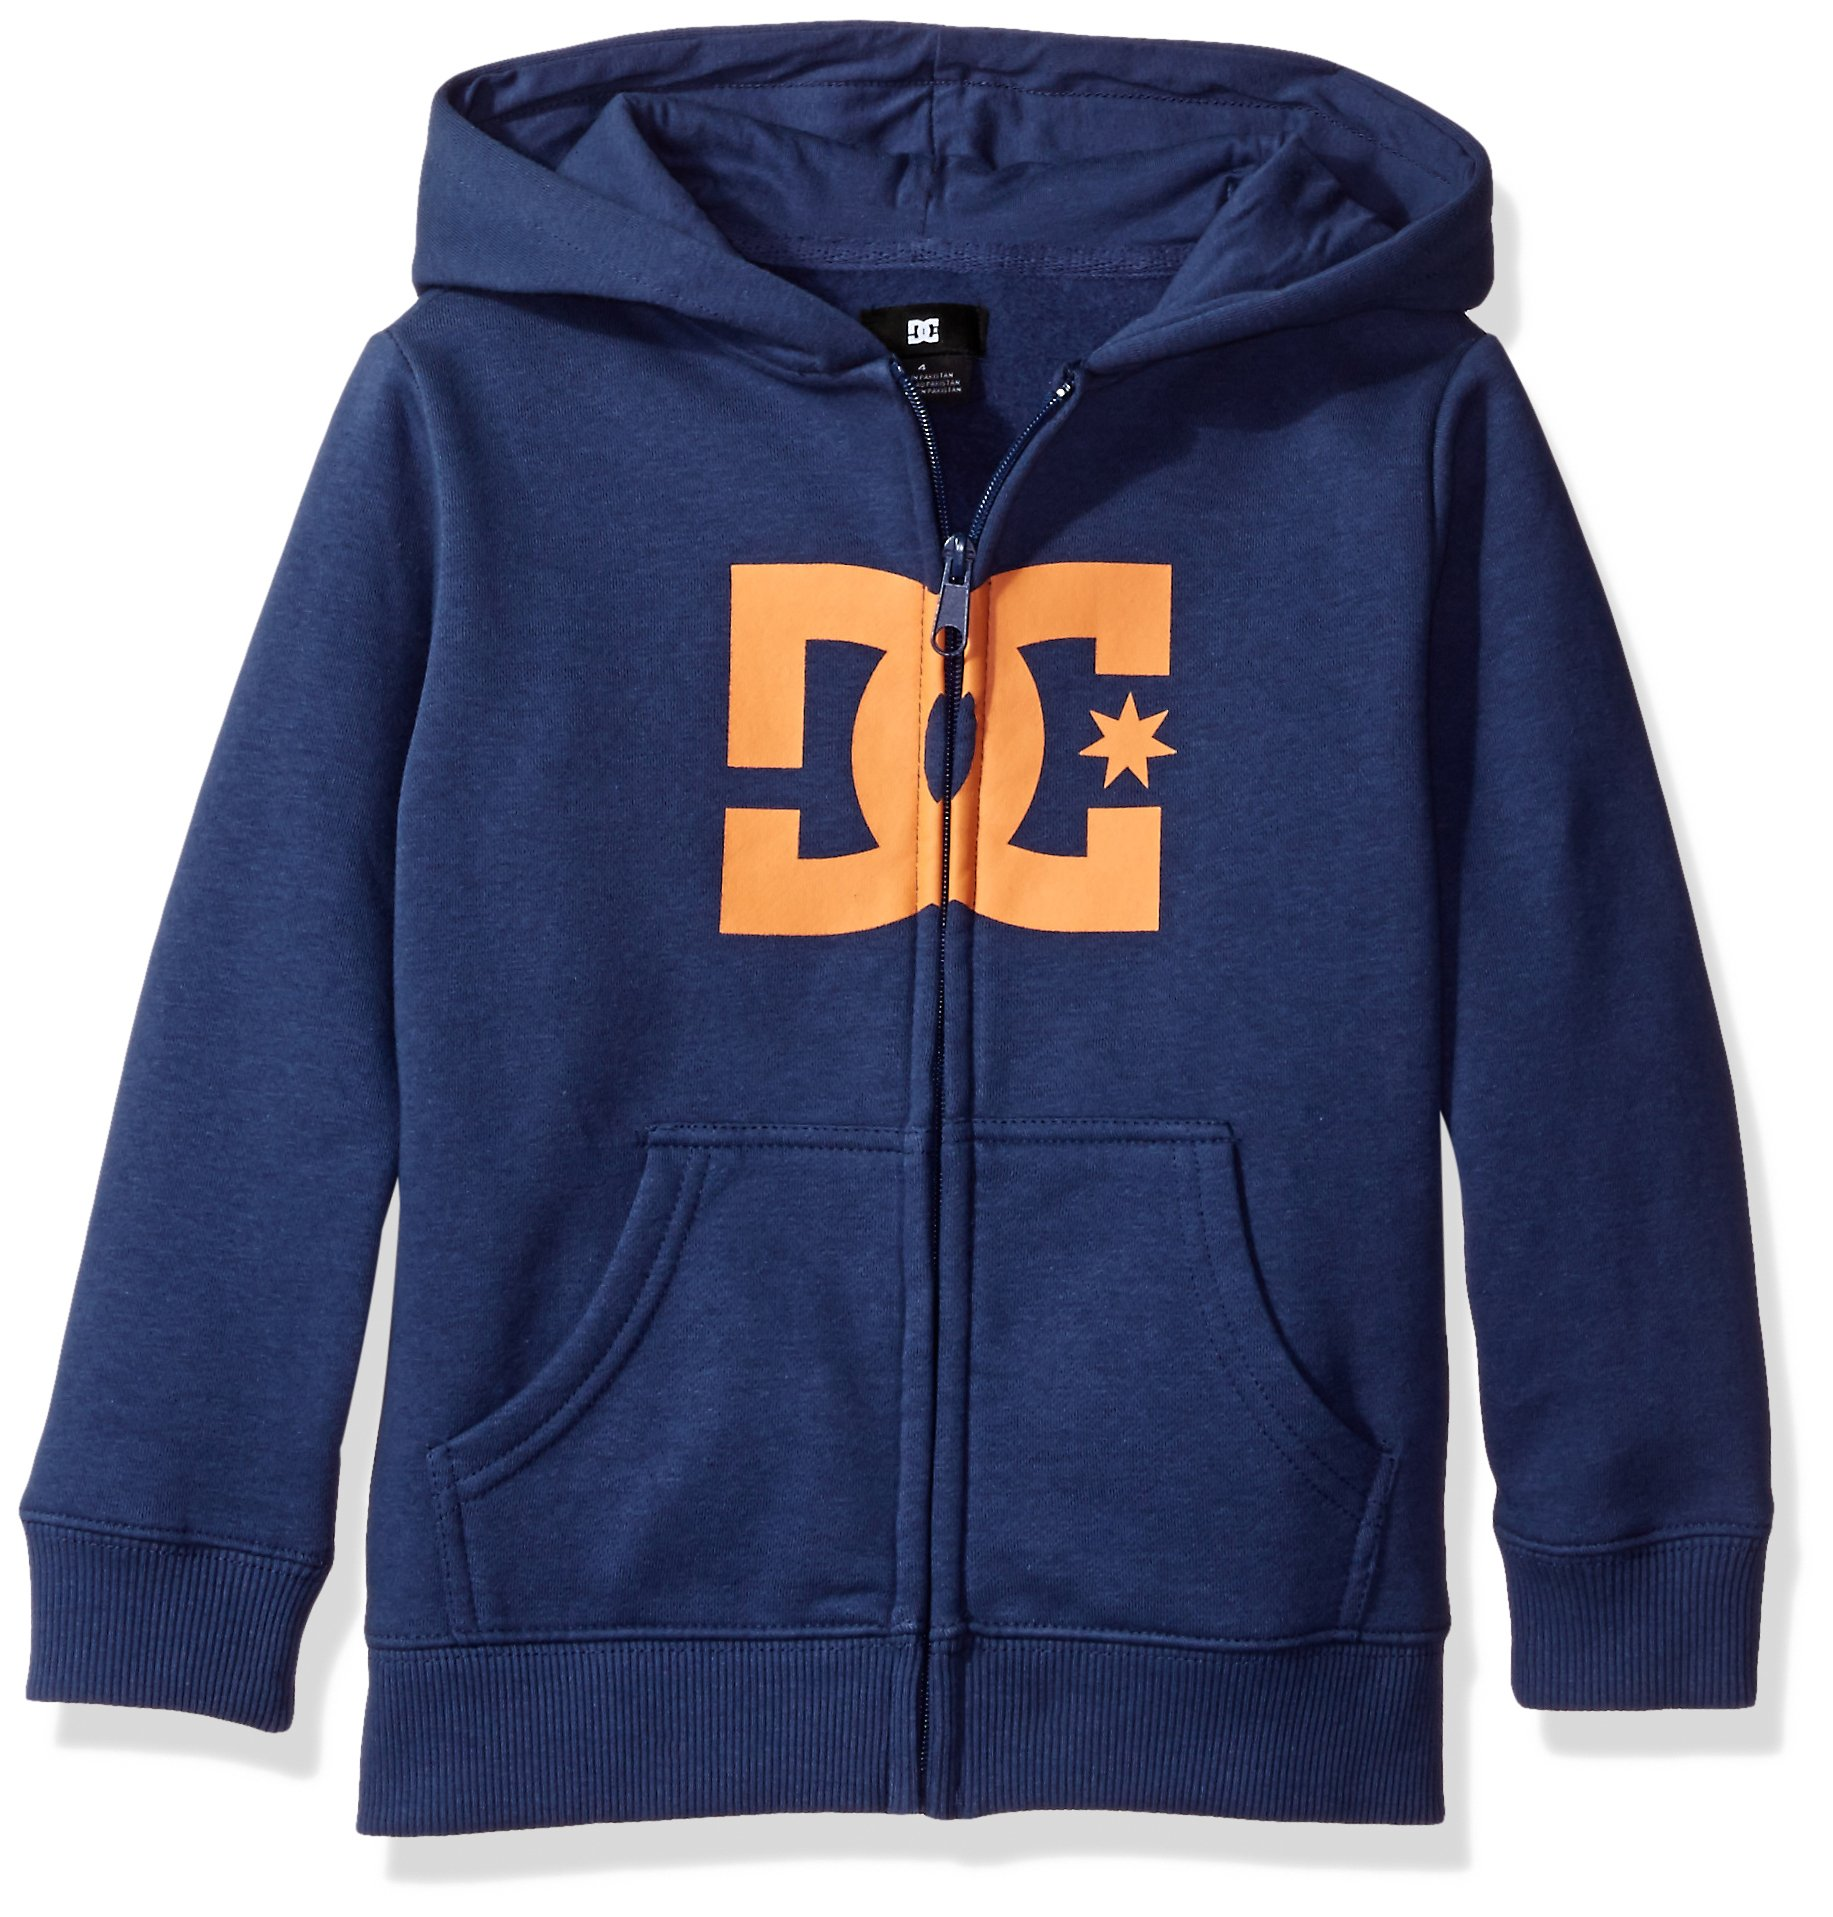 DC Youth Little Boys' Star Zip-up Sweatshirt Hoodie, Summers Blue/Muskmelon, 4 by DC